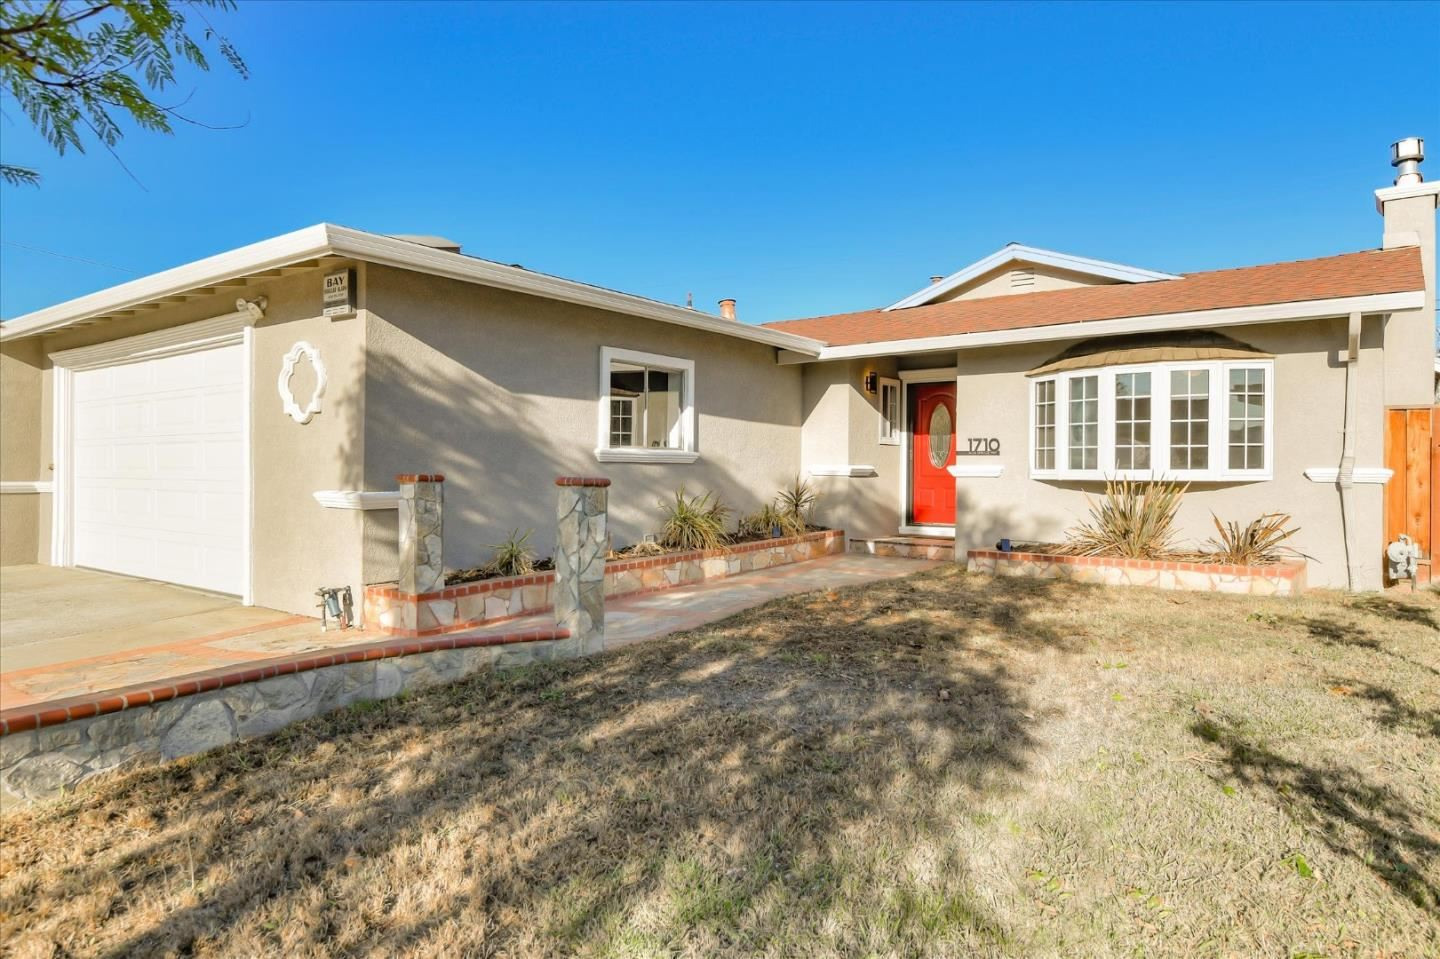 Photo for 1710 Blue Spruce WAY, MILPITAS, CA 95035 (MLS # ML81823370)